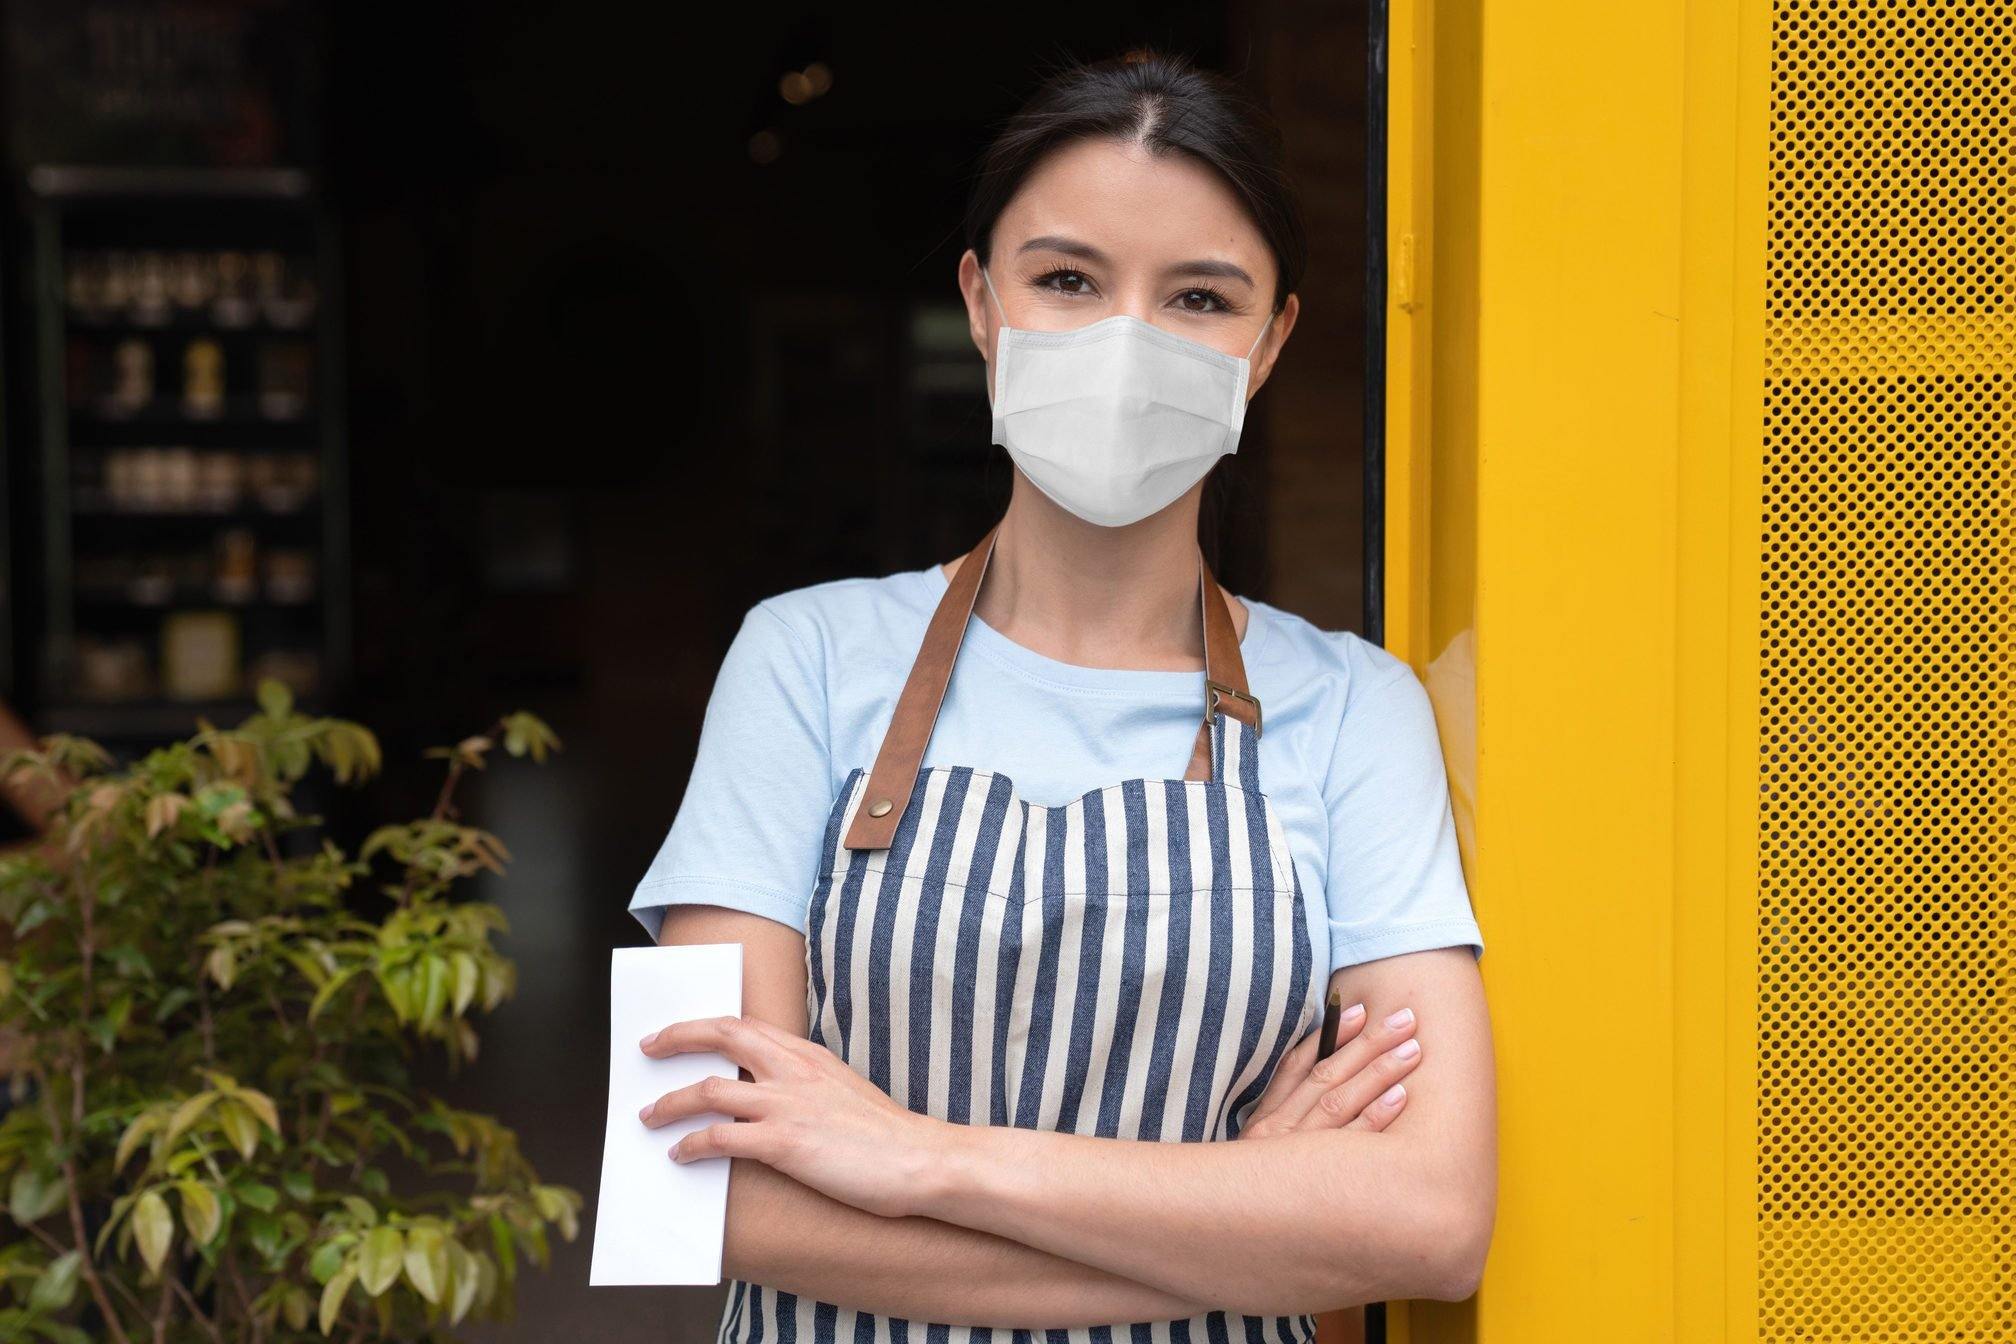 Business owner working at a cafe wearing a facemask